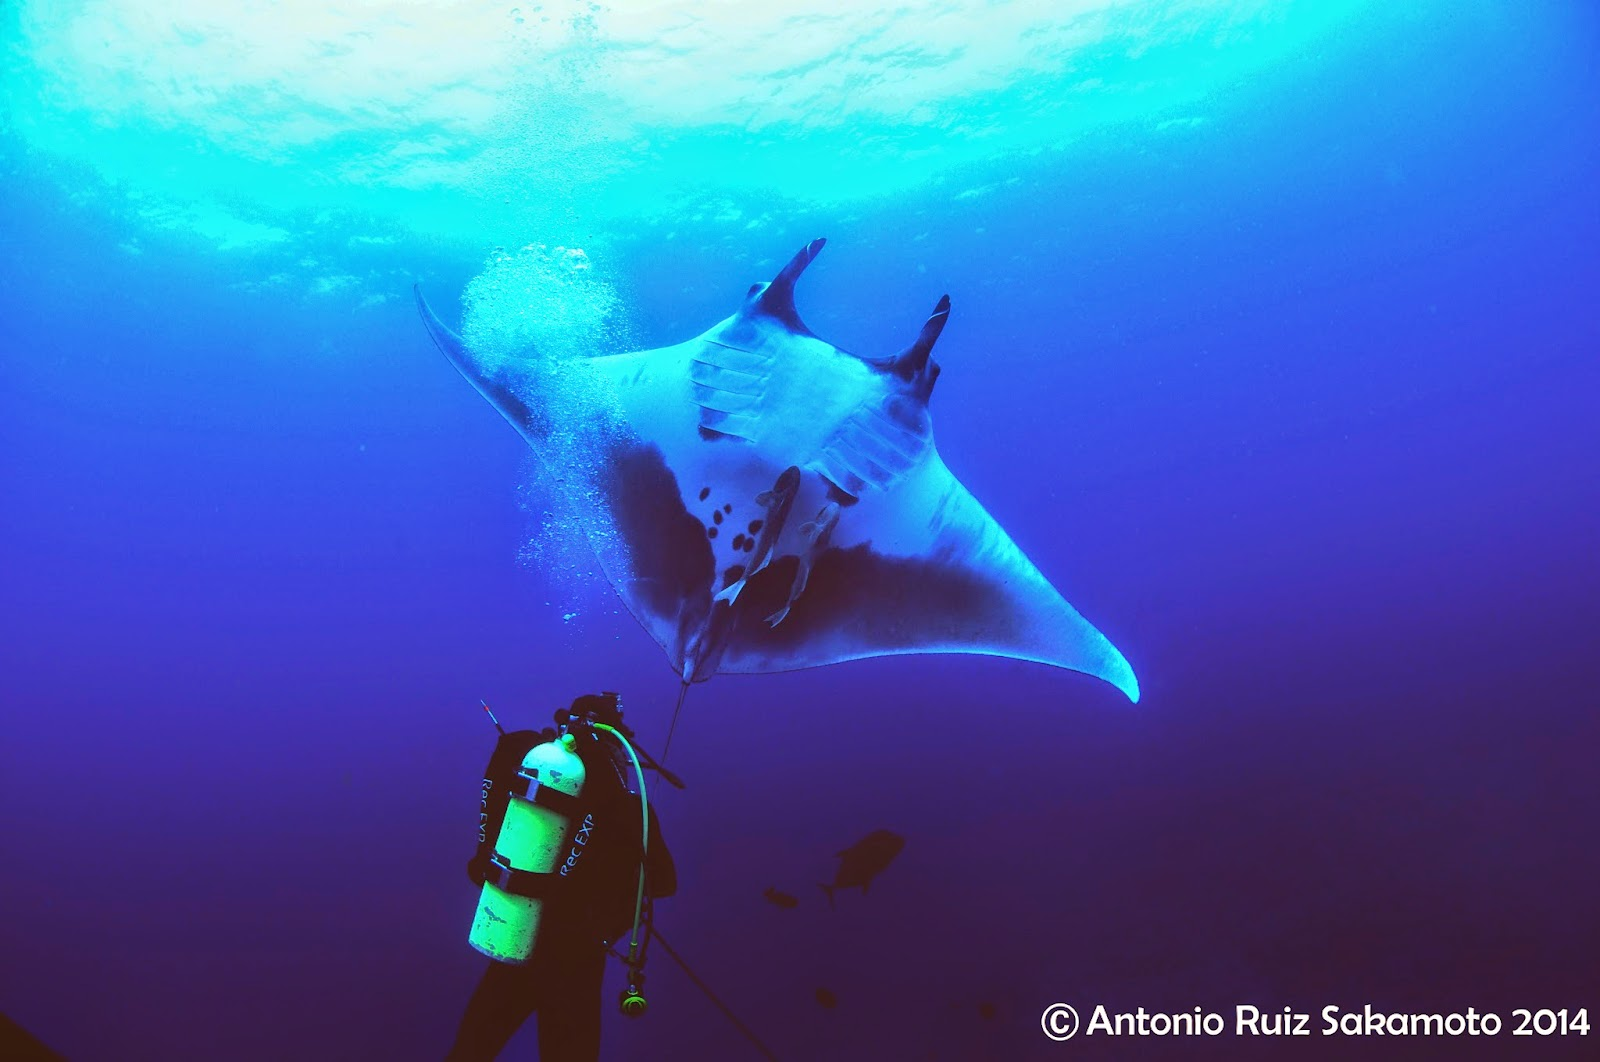 Manta ray swimming underwater with its dorsal fins spread open viewed - The Aquarium S Marine Conservation Action Fund Helped Support The Satellite Tagging Of Manta Rays Off The Coast Of Mexico Led By Josh Stewart Of The Manta